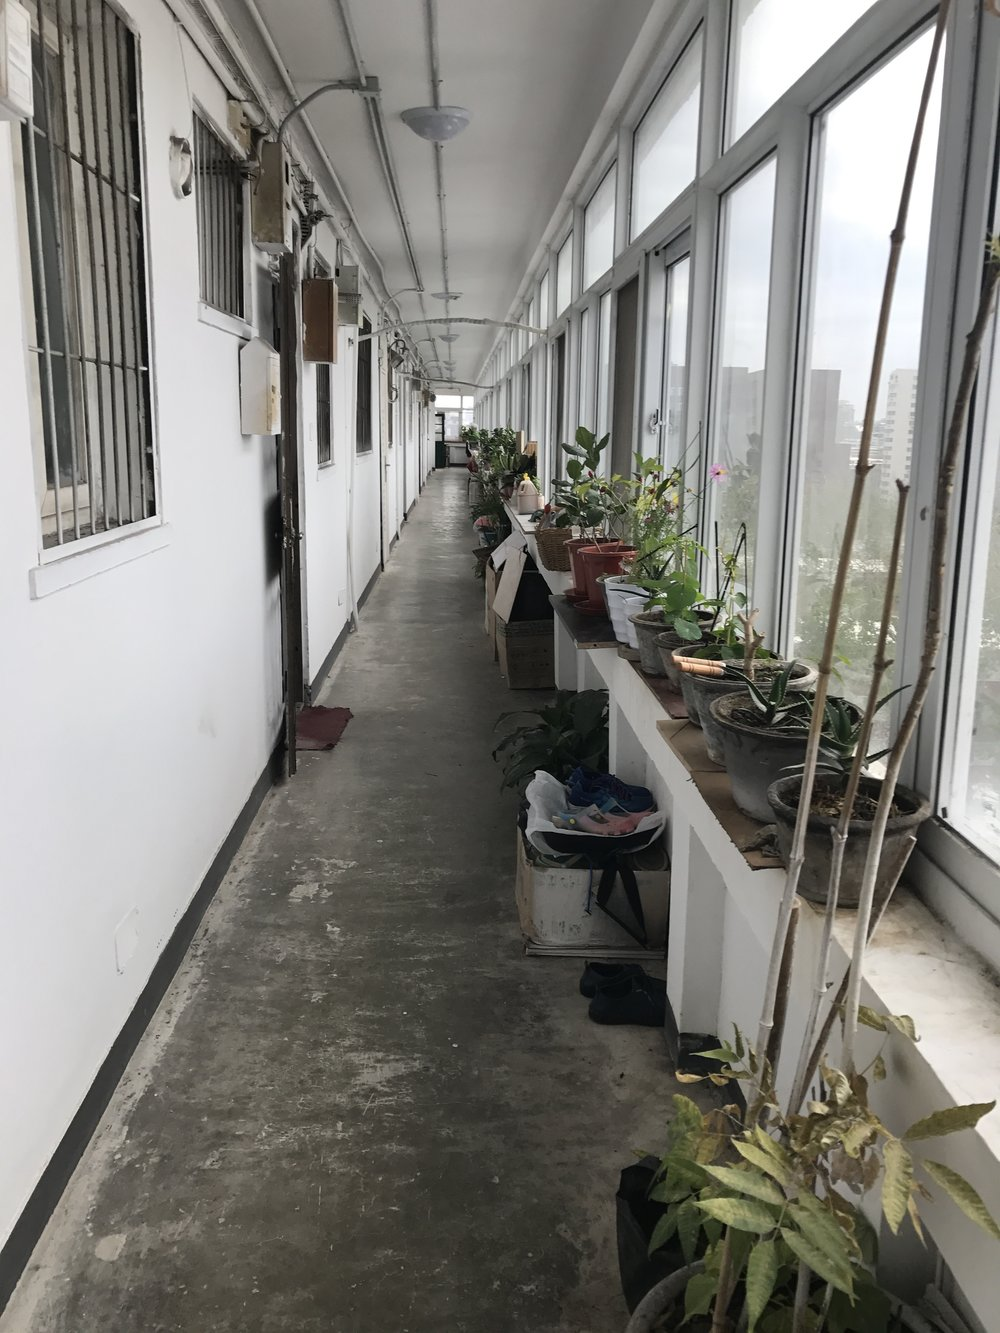 My hallway. I love the plants. The Chinese keep nature close, even in the city.